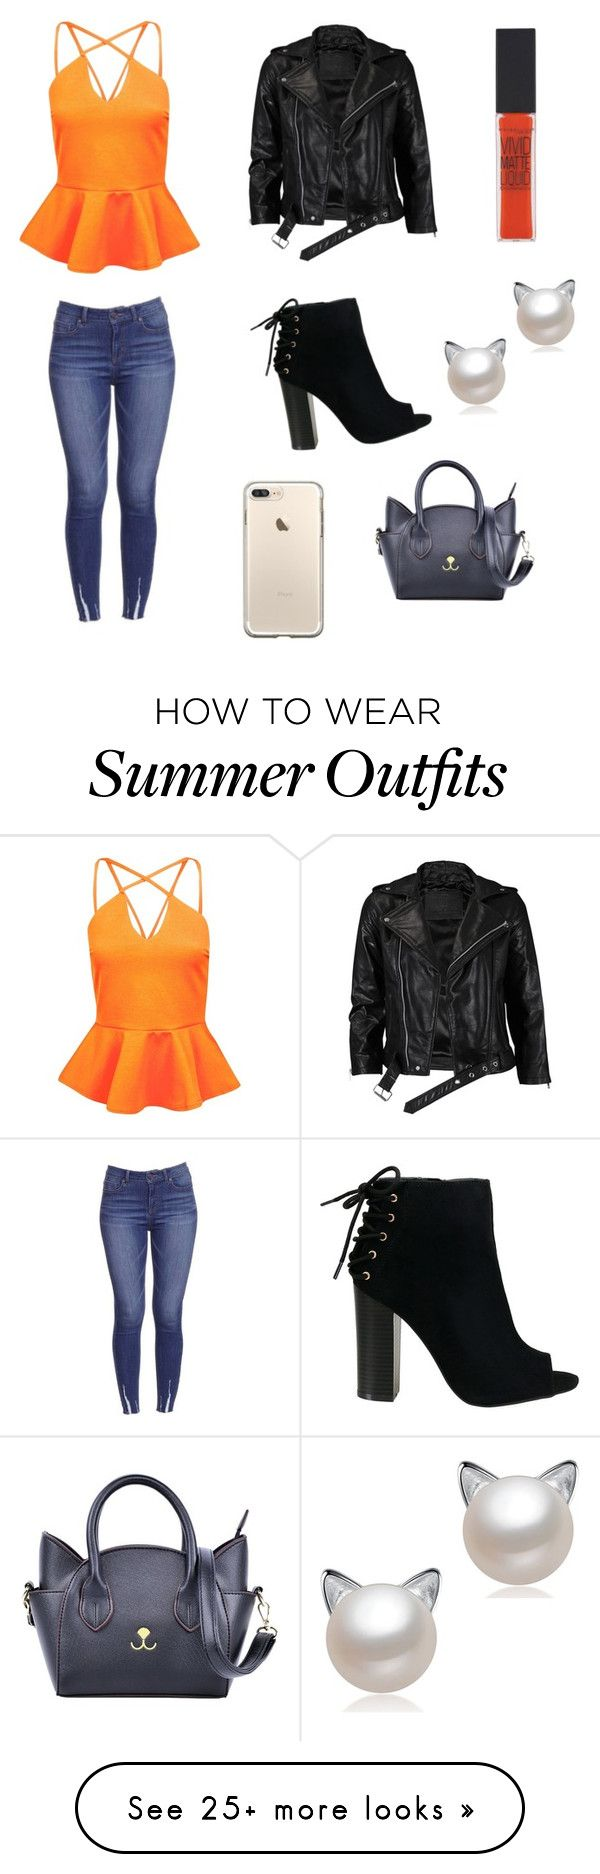 """""""Halloween Party Outfit """" by lsantana13 on Polyvore featuring Boohoo, ..."""